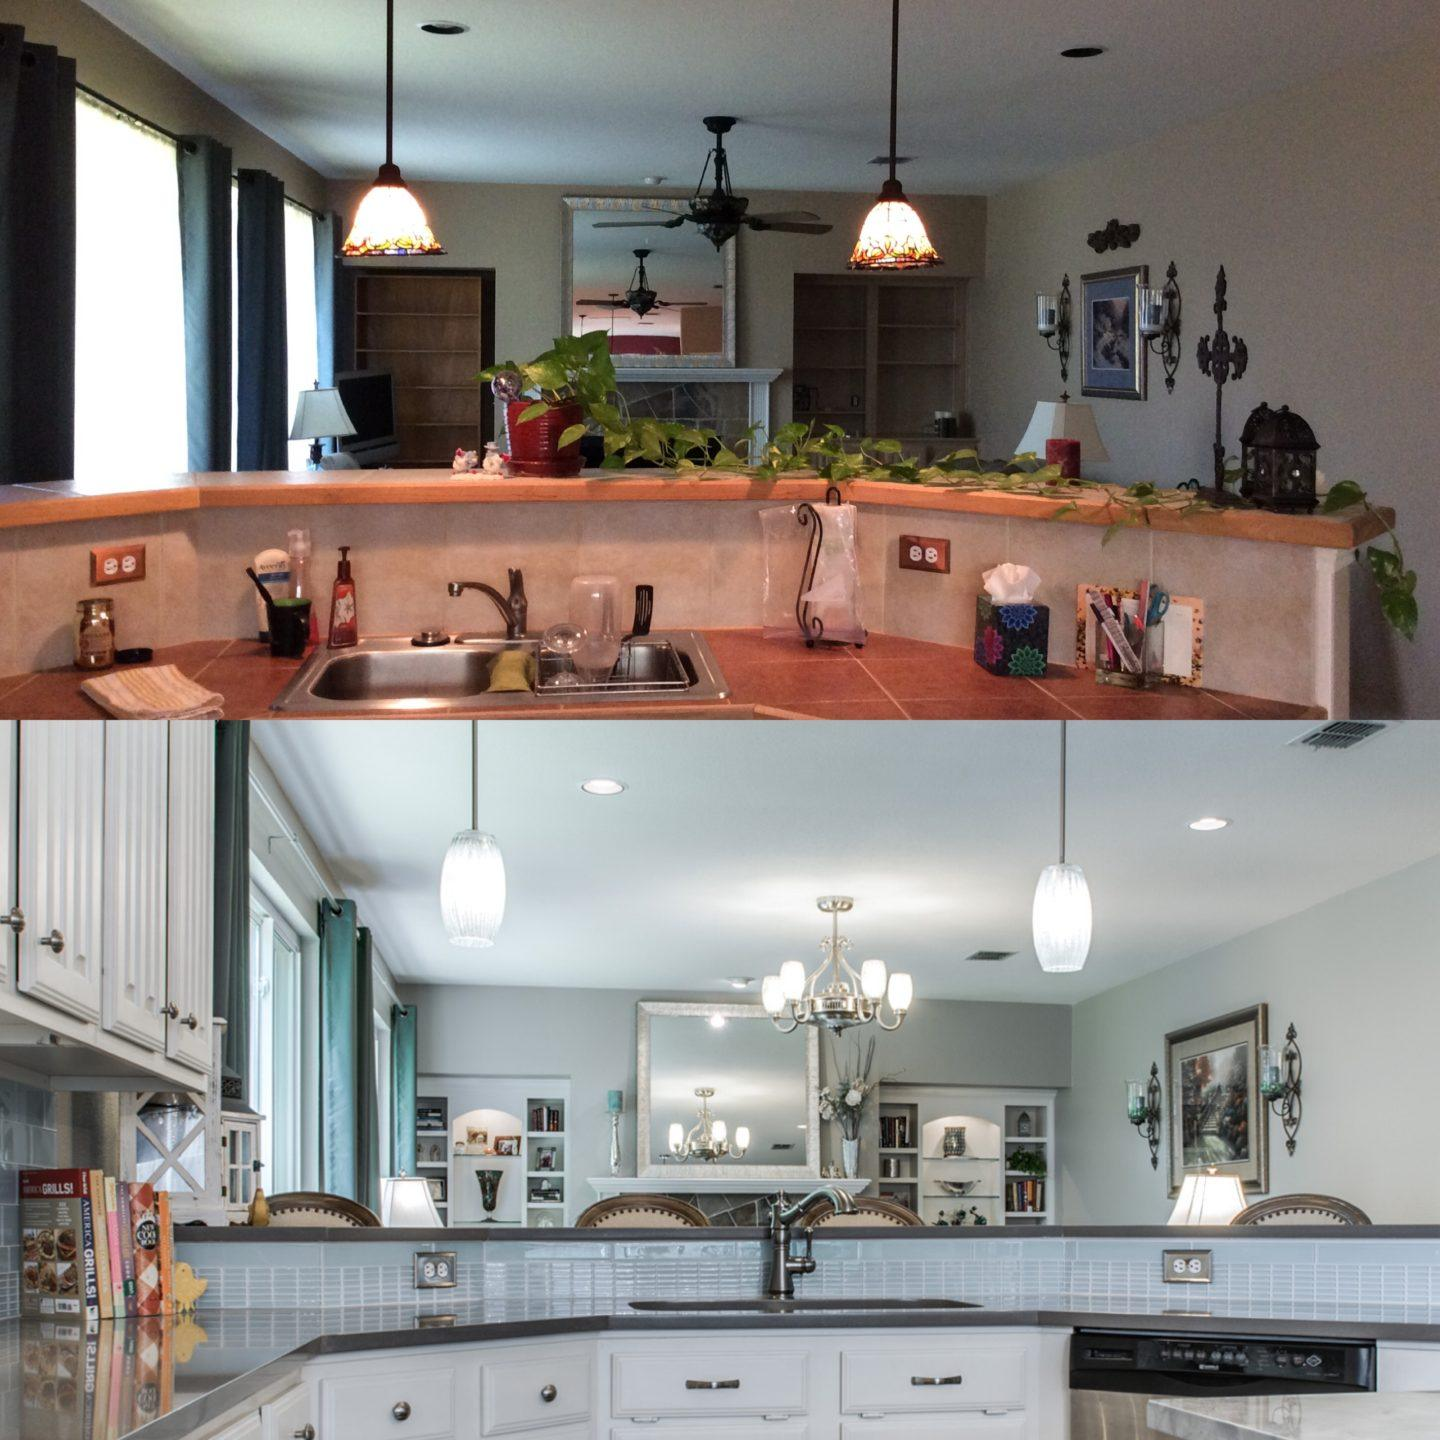 Before and After Feature: Benefits of Home Renovation